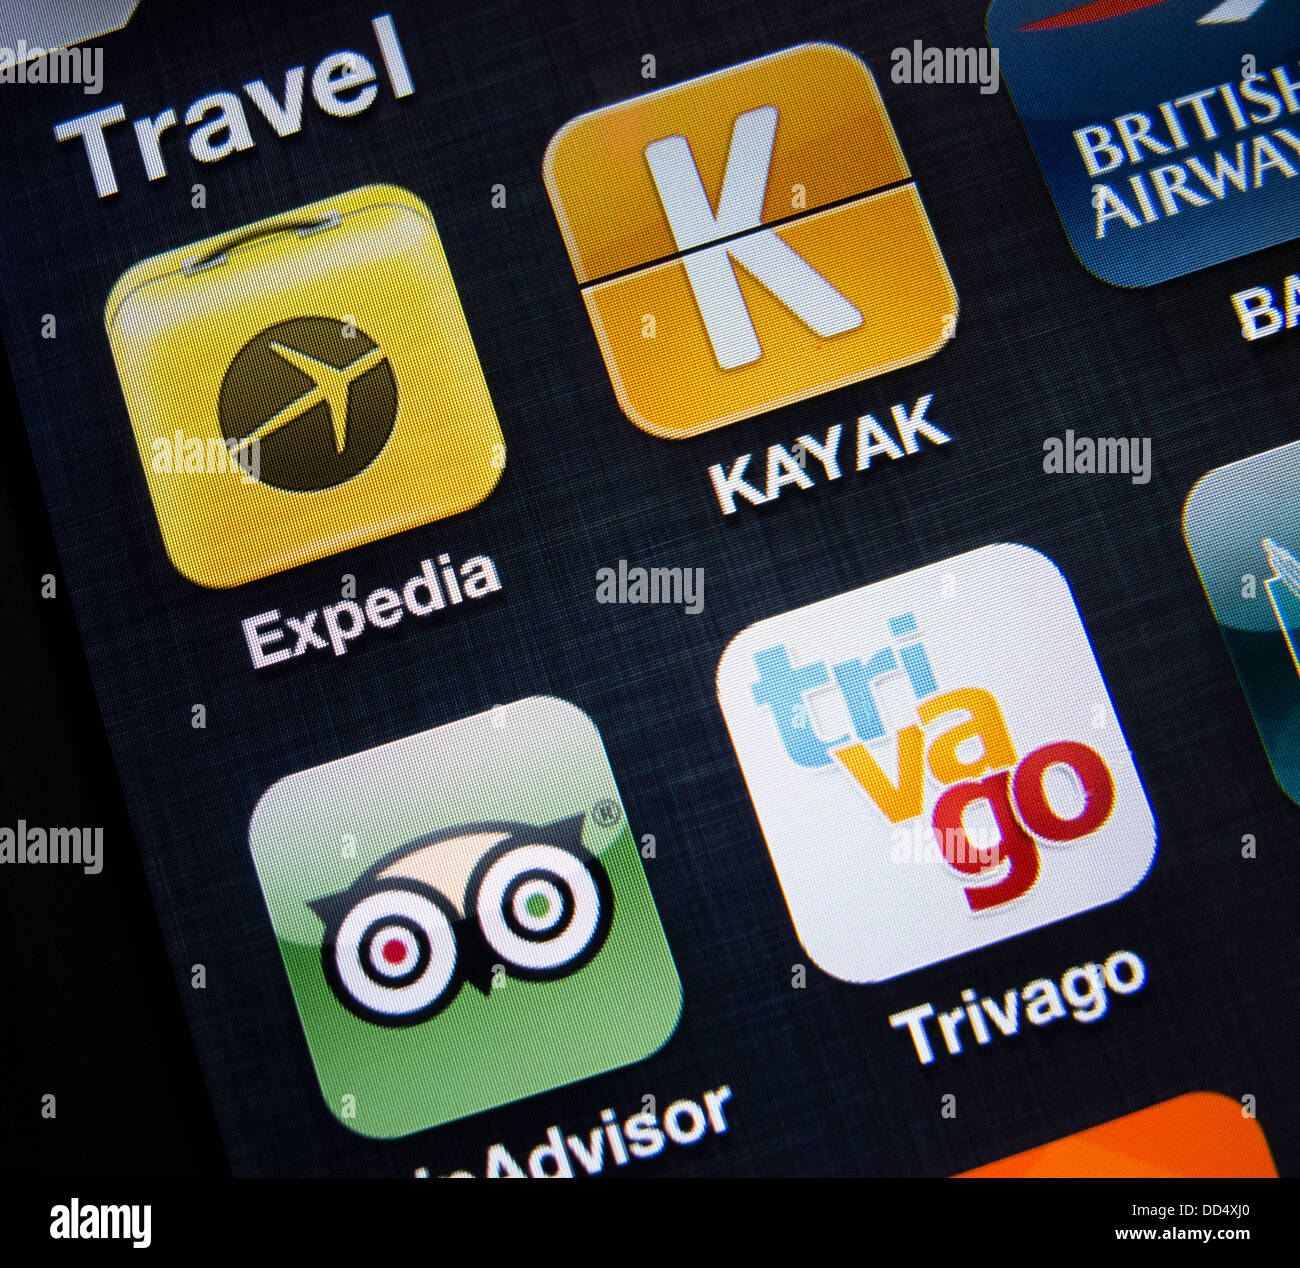 detail of many travel apps on a iPhone 5 smart phone - Stock Image